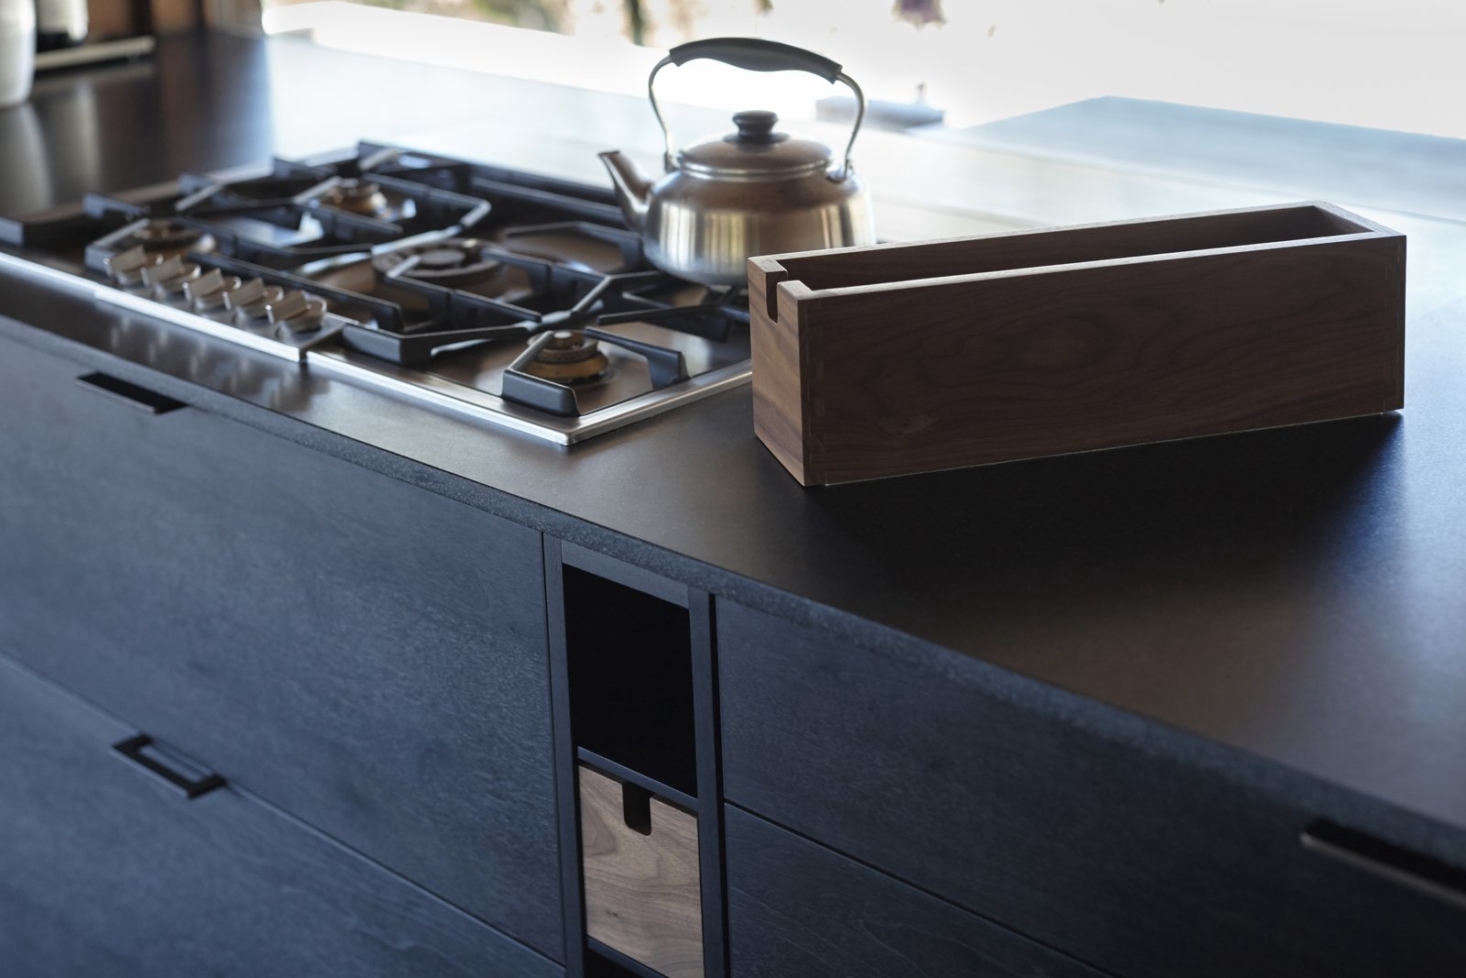 The cooktop is the Gaggenau Vario 0 Series Gas Cooktop and the tea kettle is by Sori Yanagi. Henrybuilt&#8